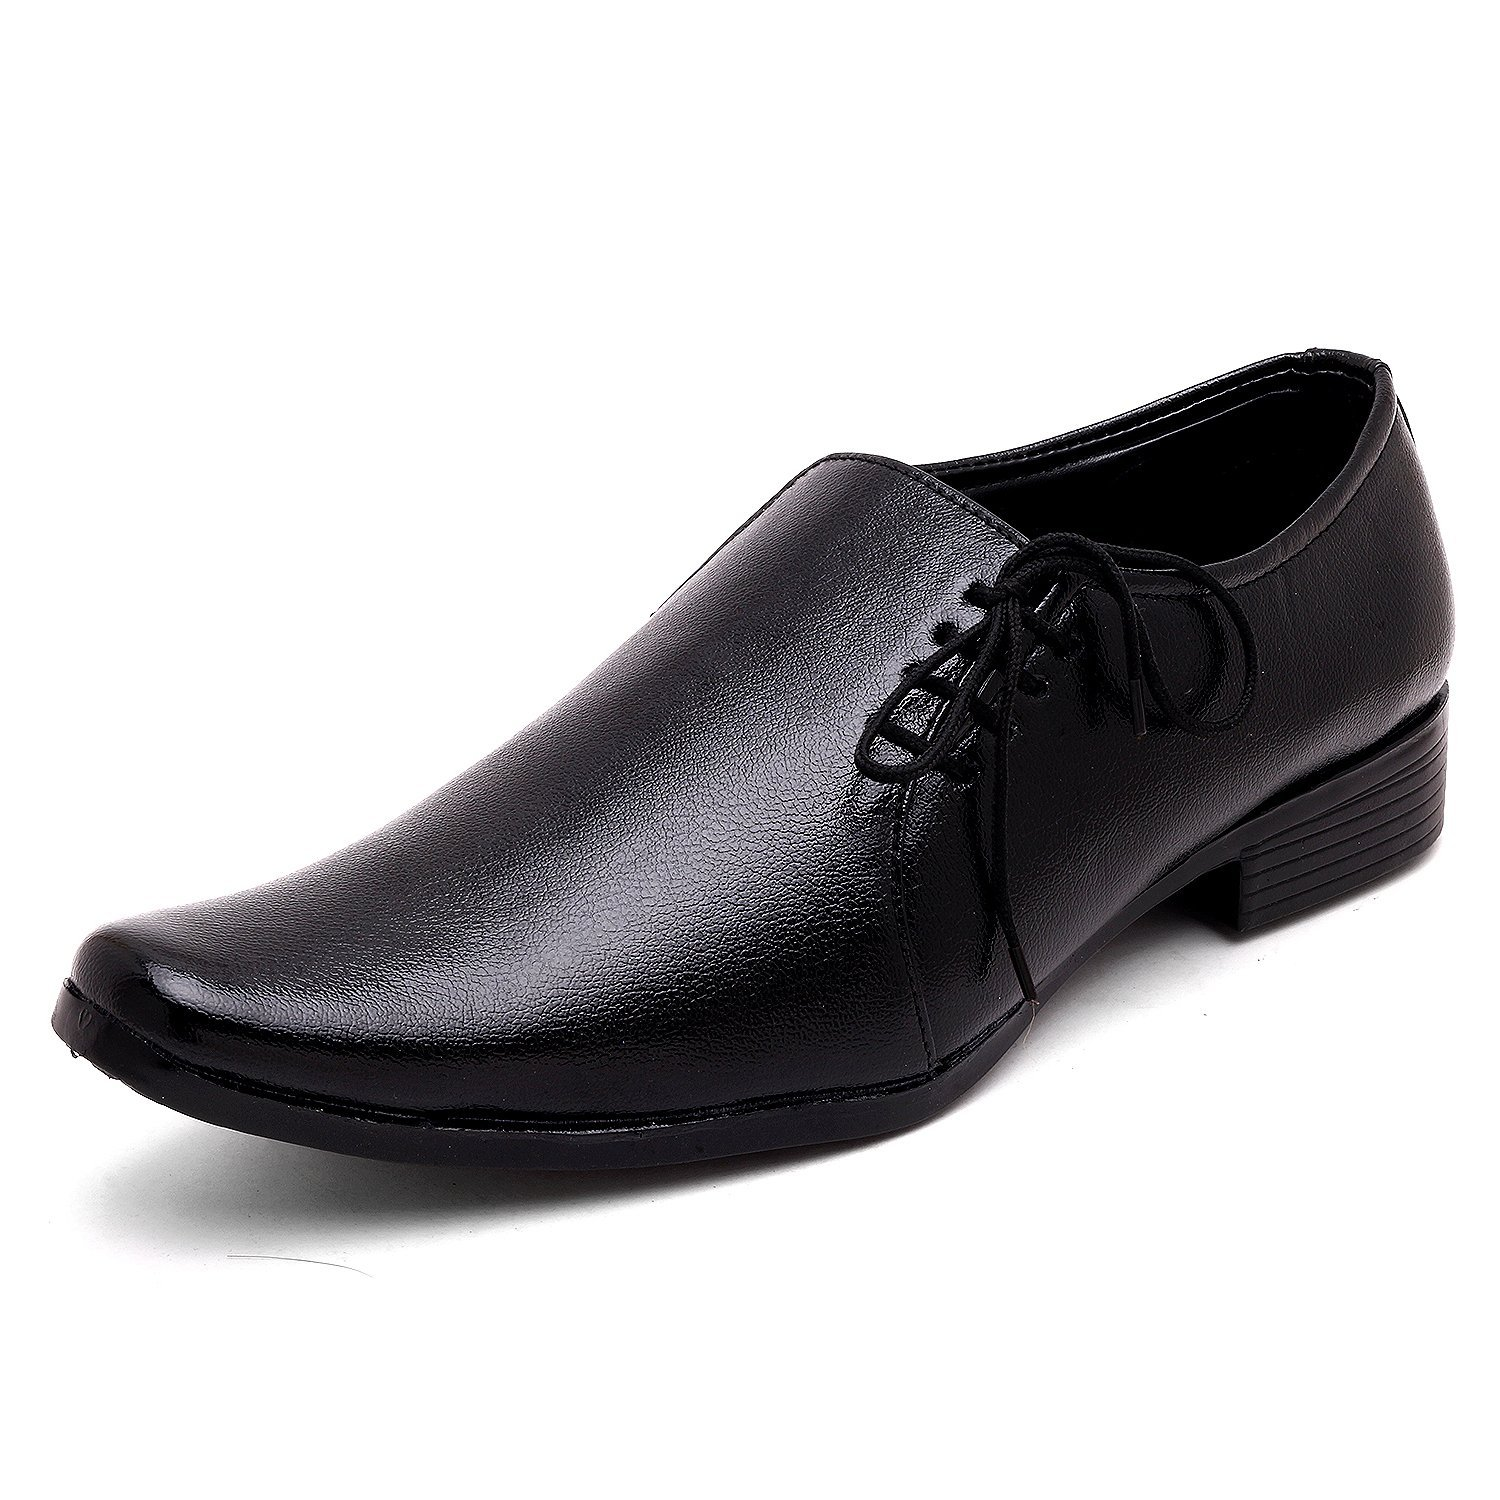 Classic Men's Formal Derby Leather Dress Shoes. Rating Required. Name Email Required. Review Subject Required. Comments Classic Mens Pointed Toe Formal Leather Derby Dress Shoes. $ $ Choose Options. Quick view. Italian Mens Buckle Dress Leather Boots Shoes. $ $ Choose Options.5/5(8).